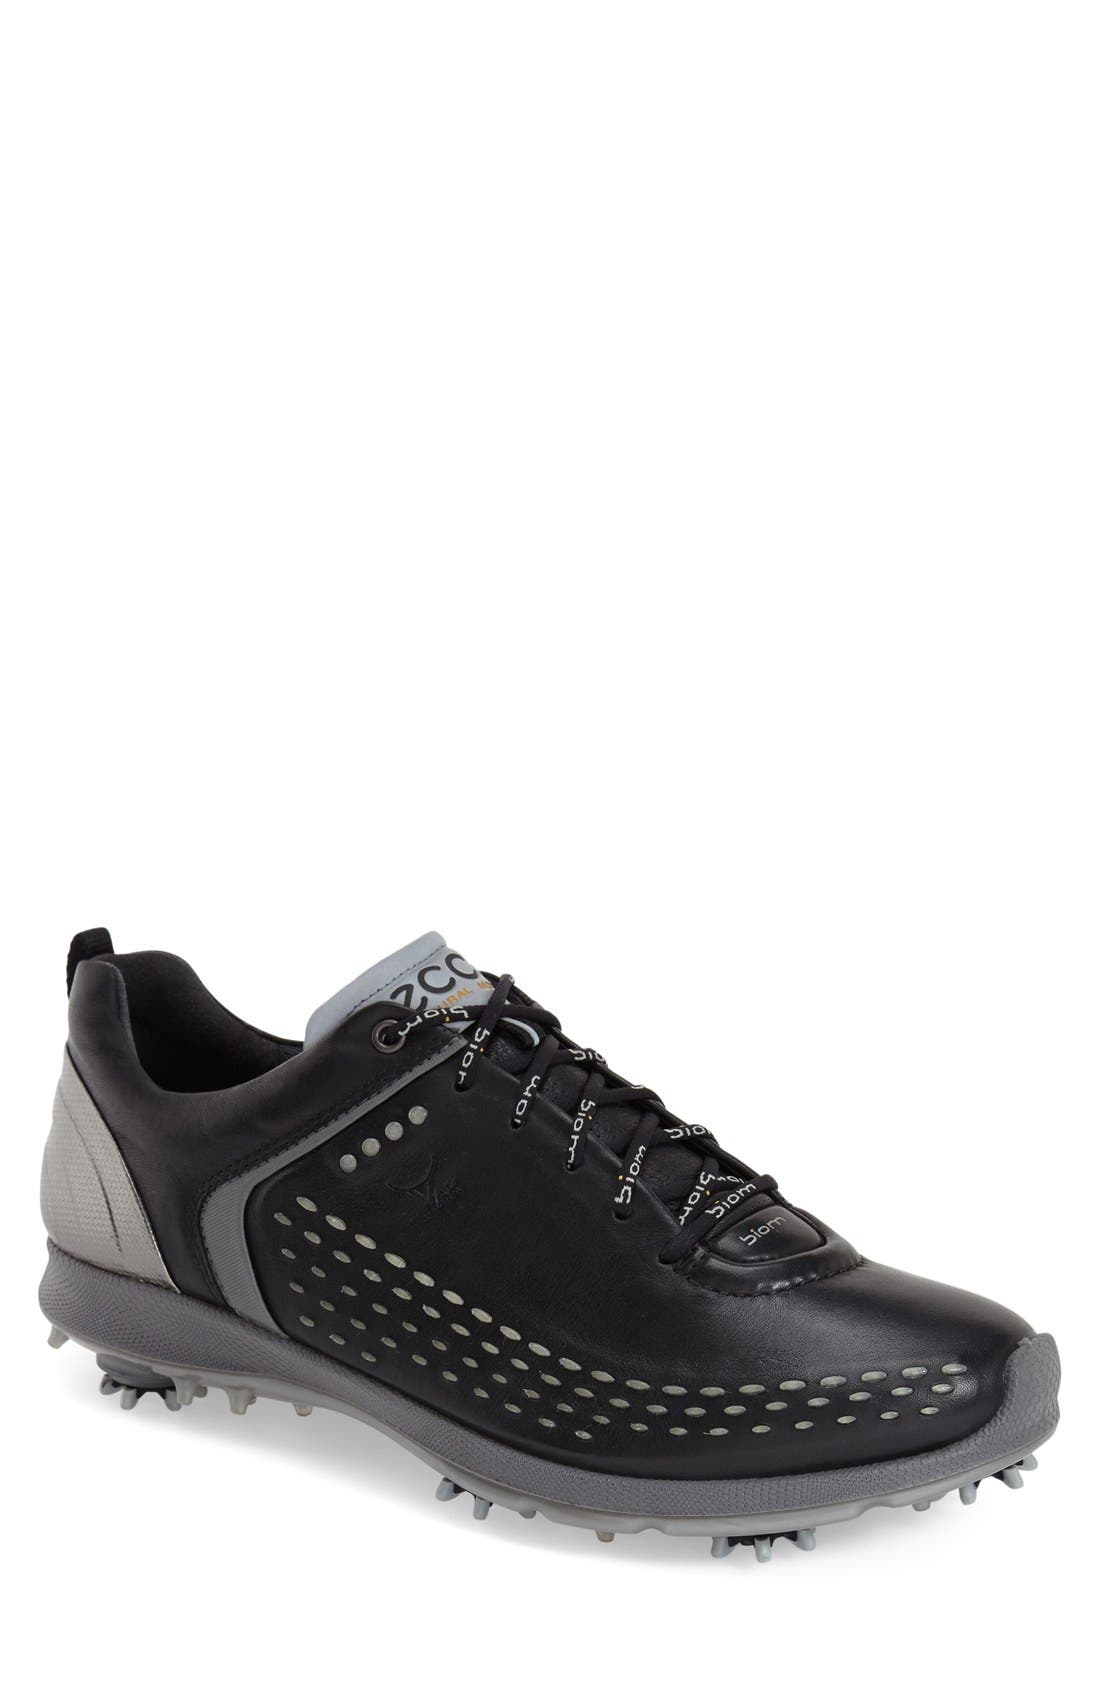 ECCO 'Biom' Hydromax Waterproof Golf Shoe (Men)